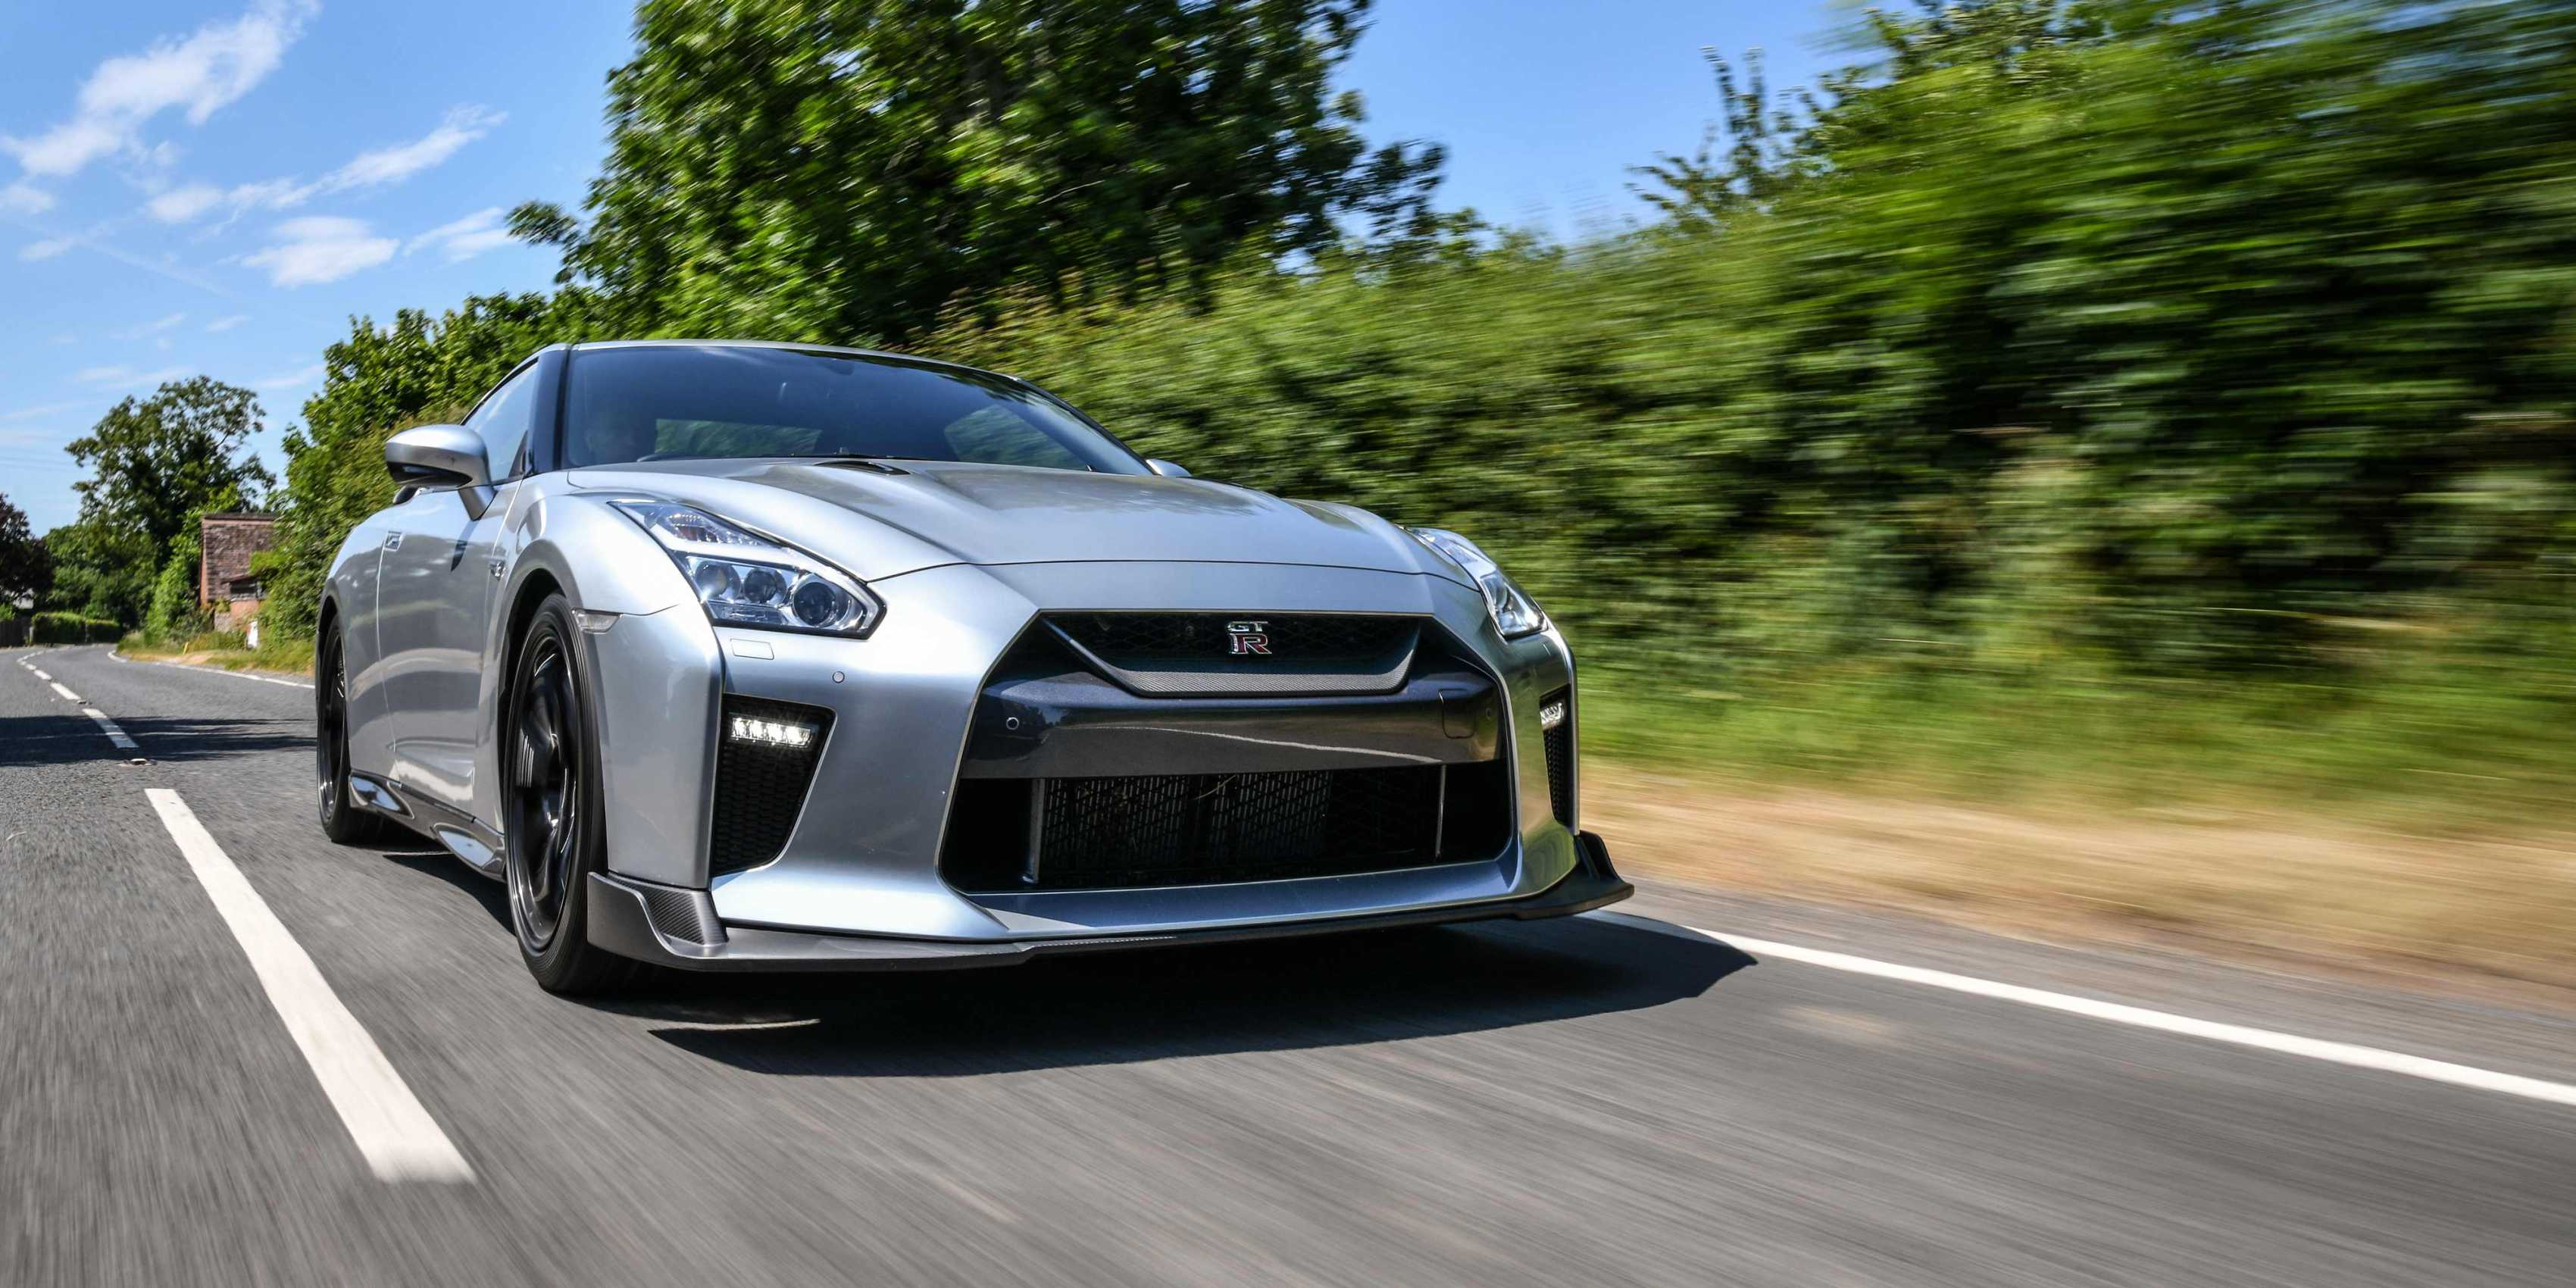 Nissan_GT-R_Track_Edition_by_Litchfield_0003